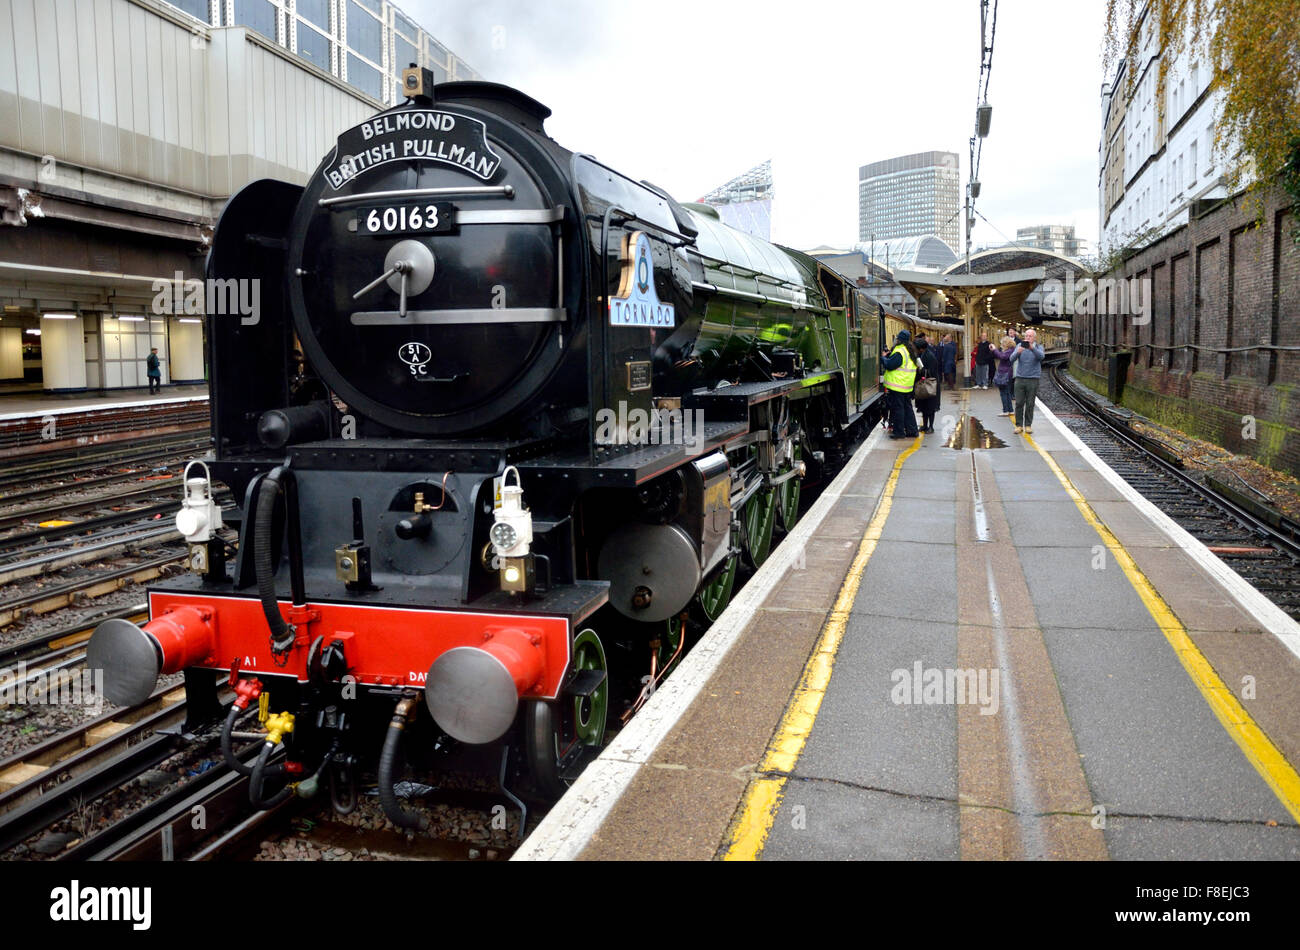 London, England, UK. Victoria Station: The Orient Express pulled by the steam locomotive 'Tornado' waiting - Stock Image